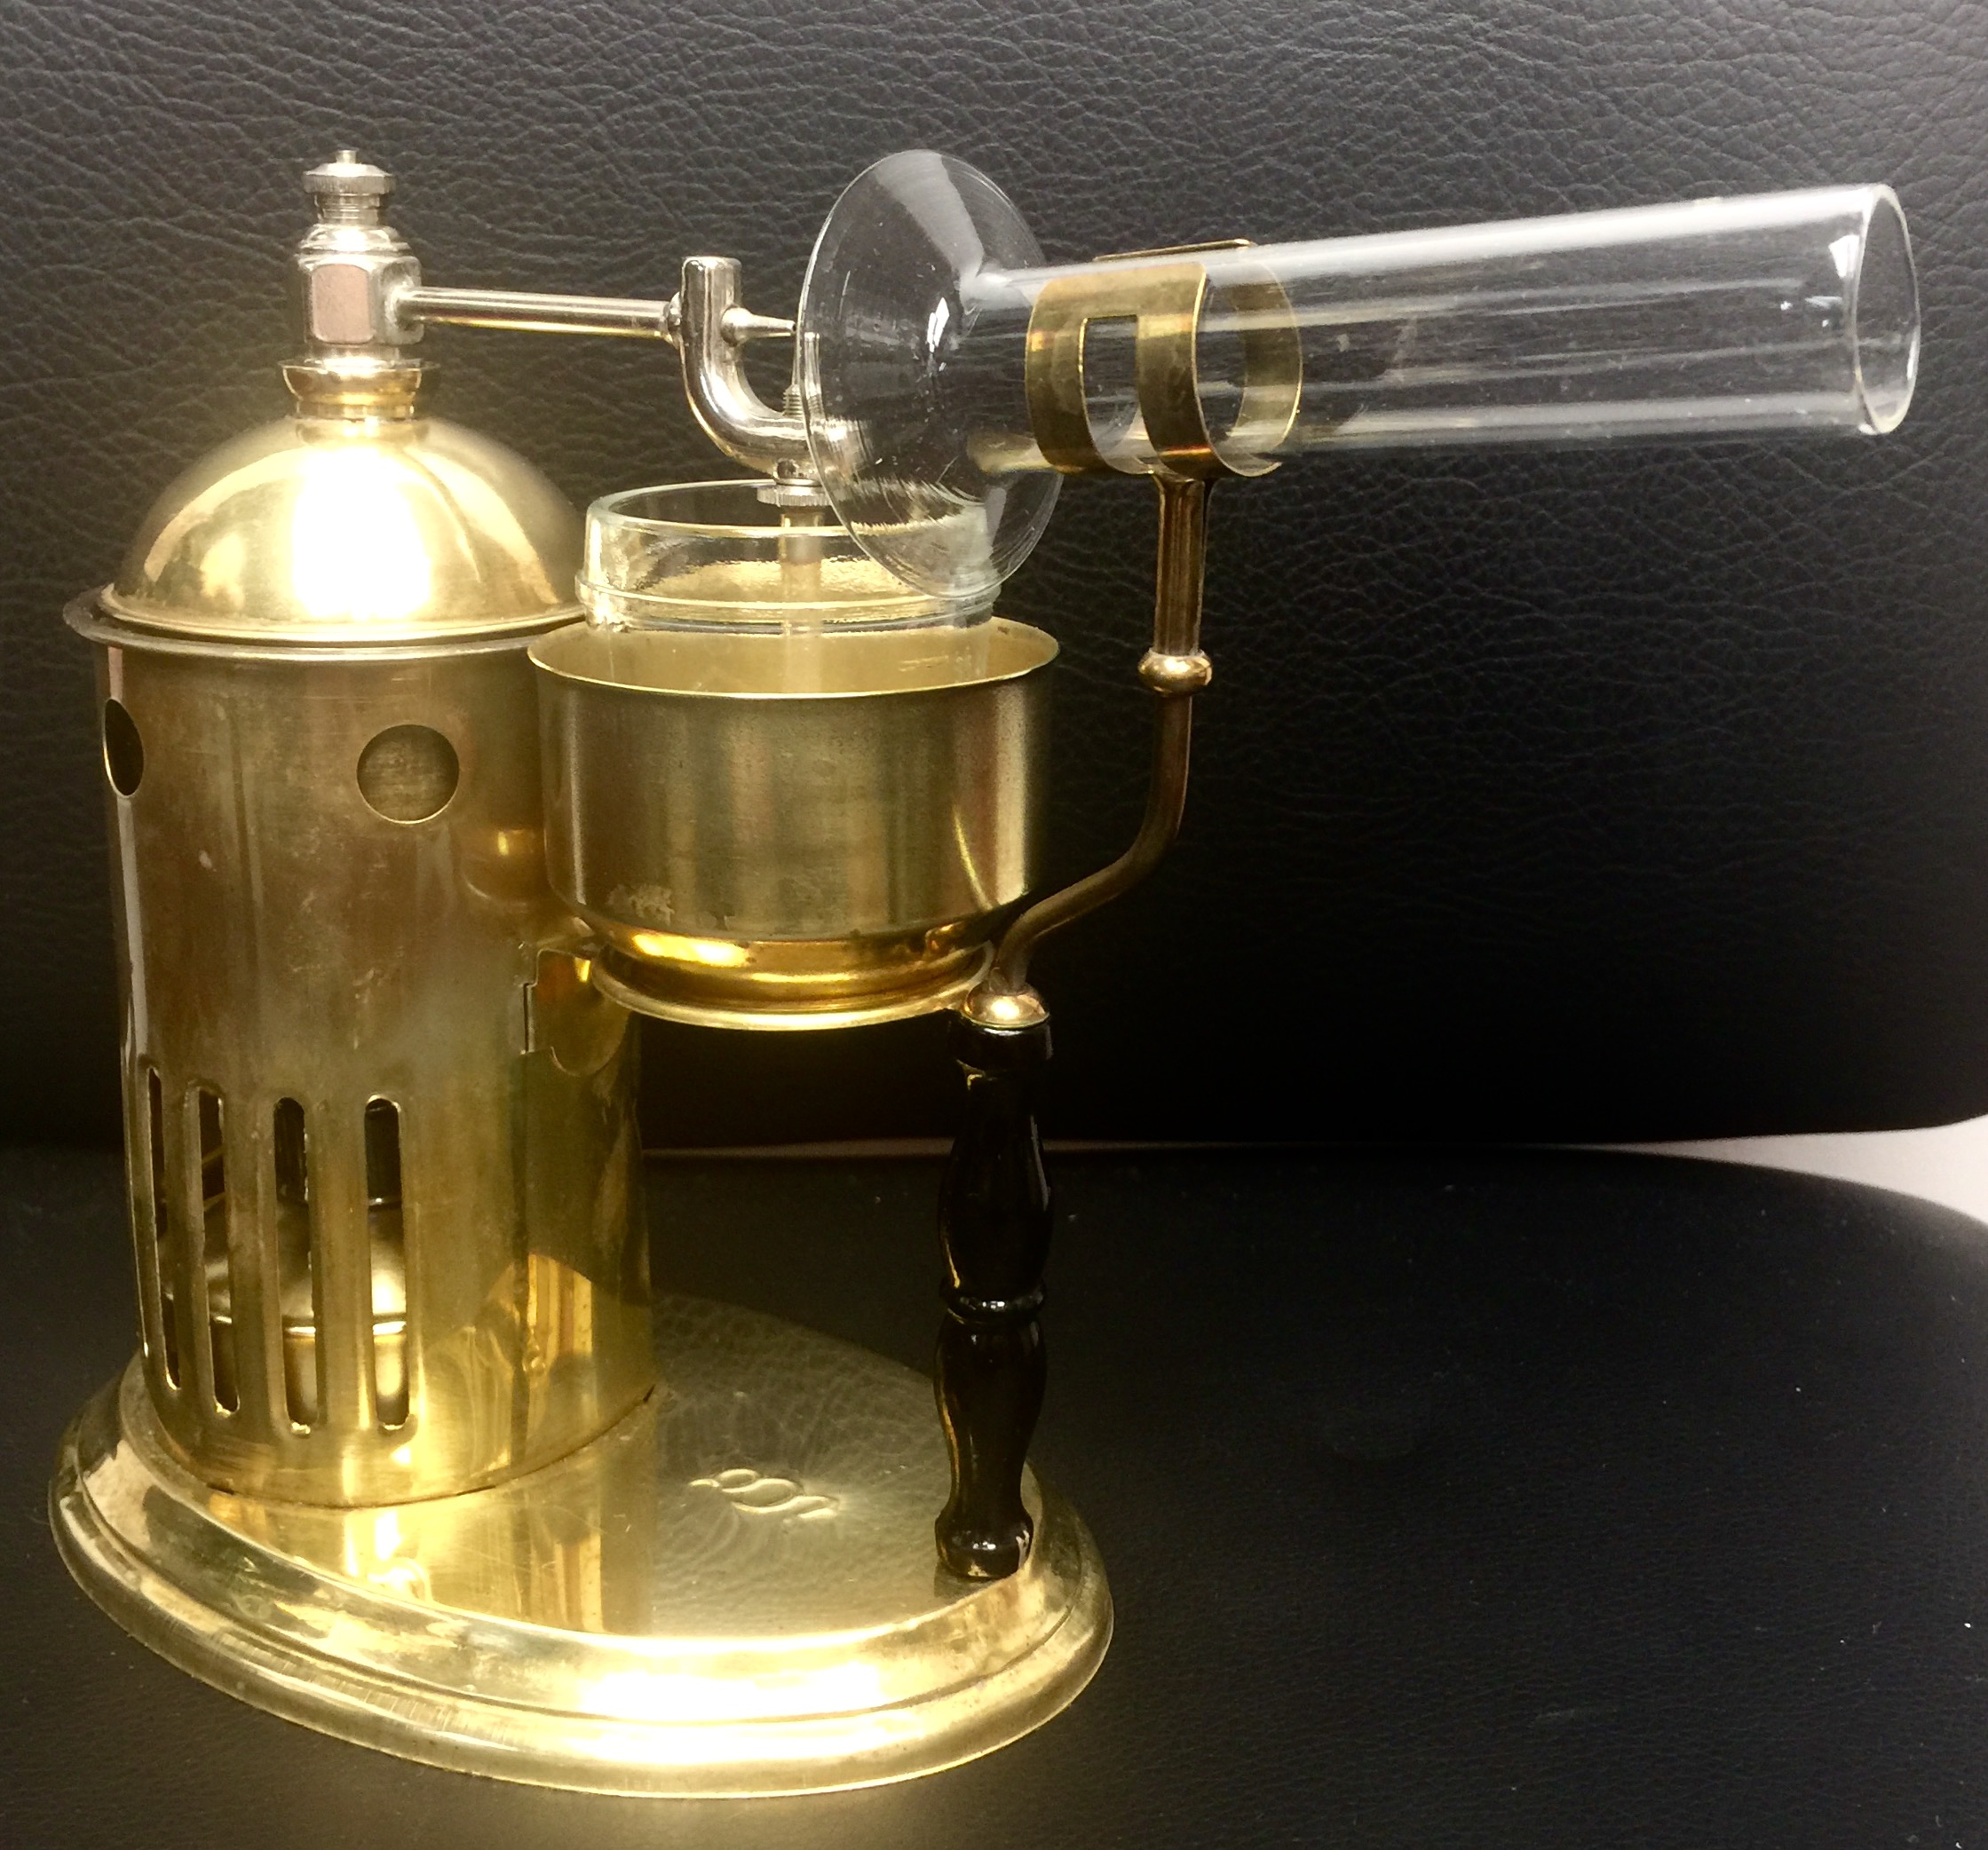 1920s Steam Inhaler